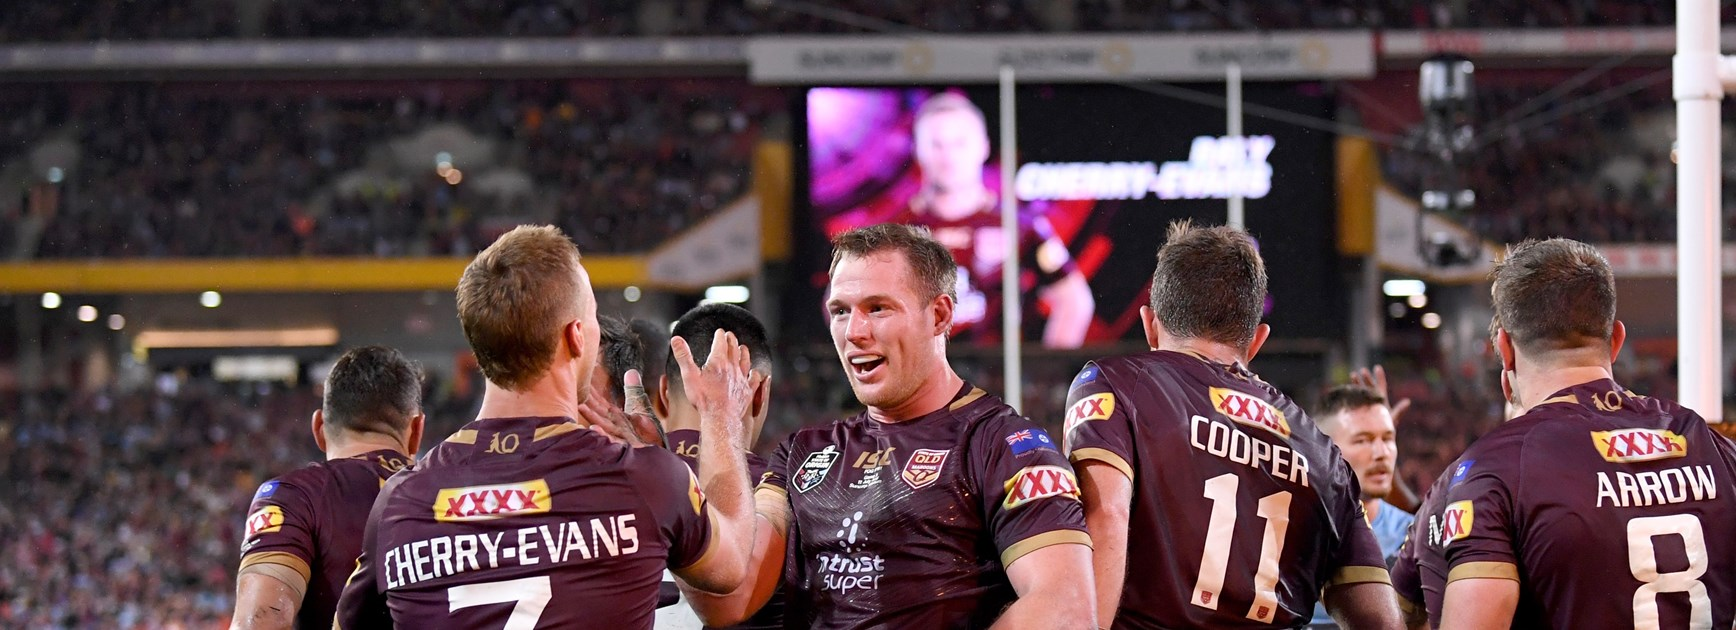 Maroons Origin team: Napa promoted as Wallace, Glasby recalled